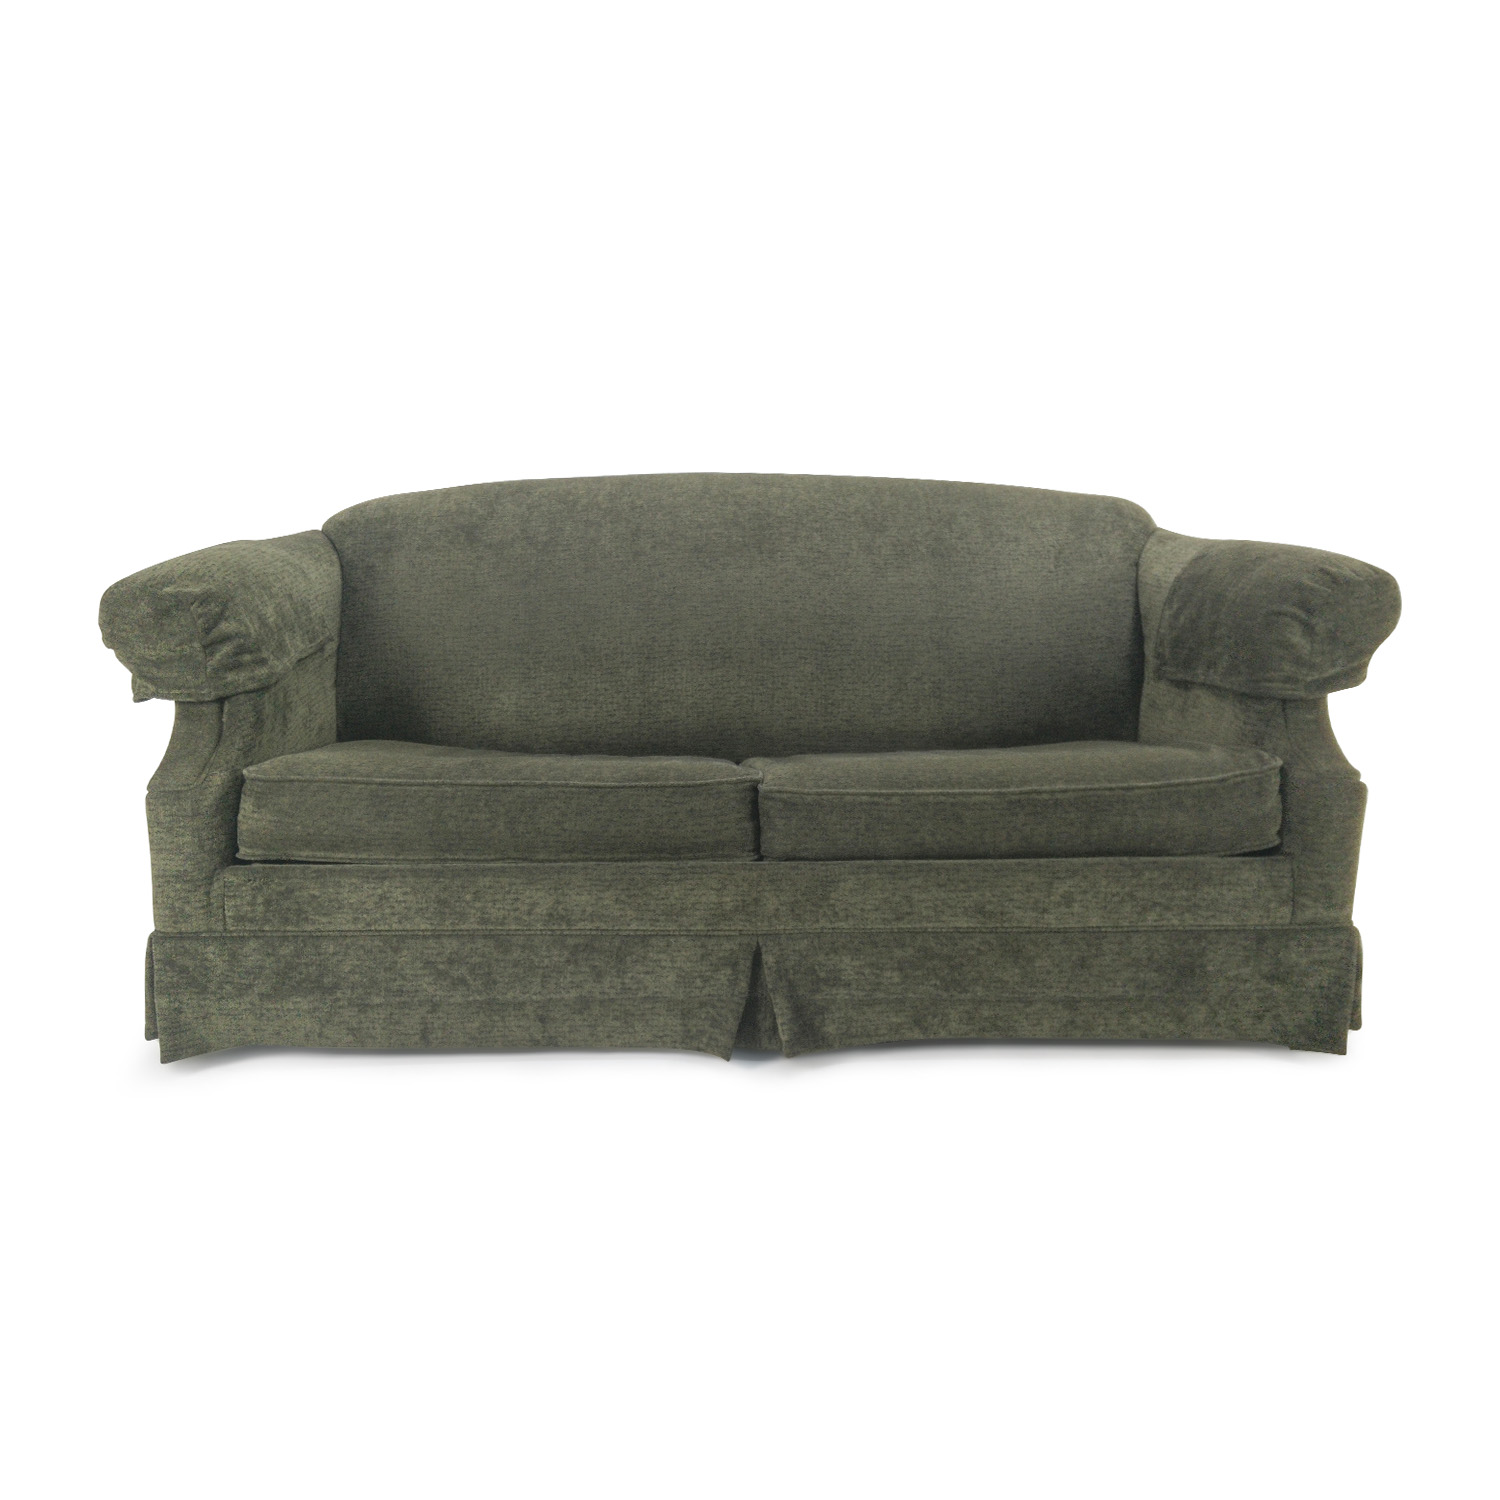 Green Fabric Sofa with Pullout Frame / Classic Sofas